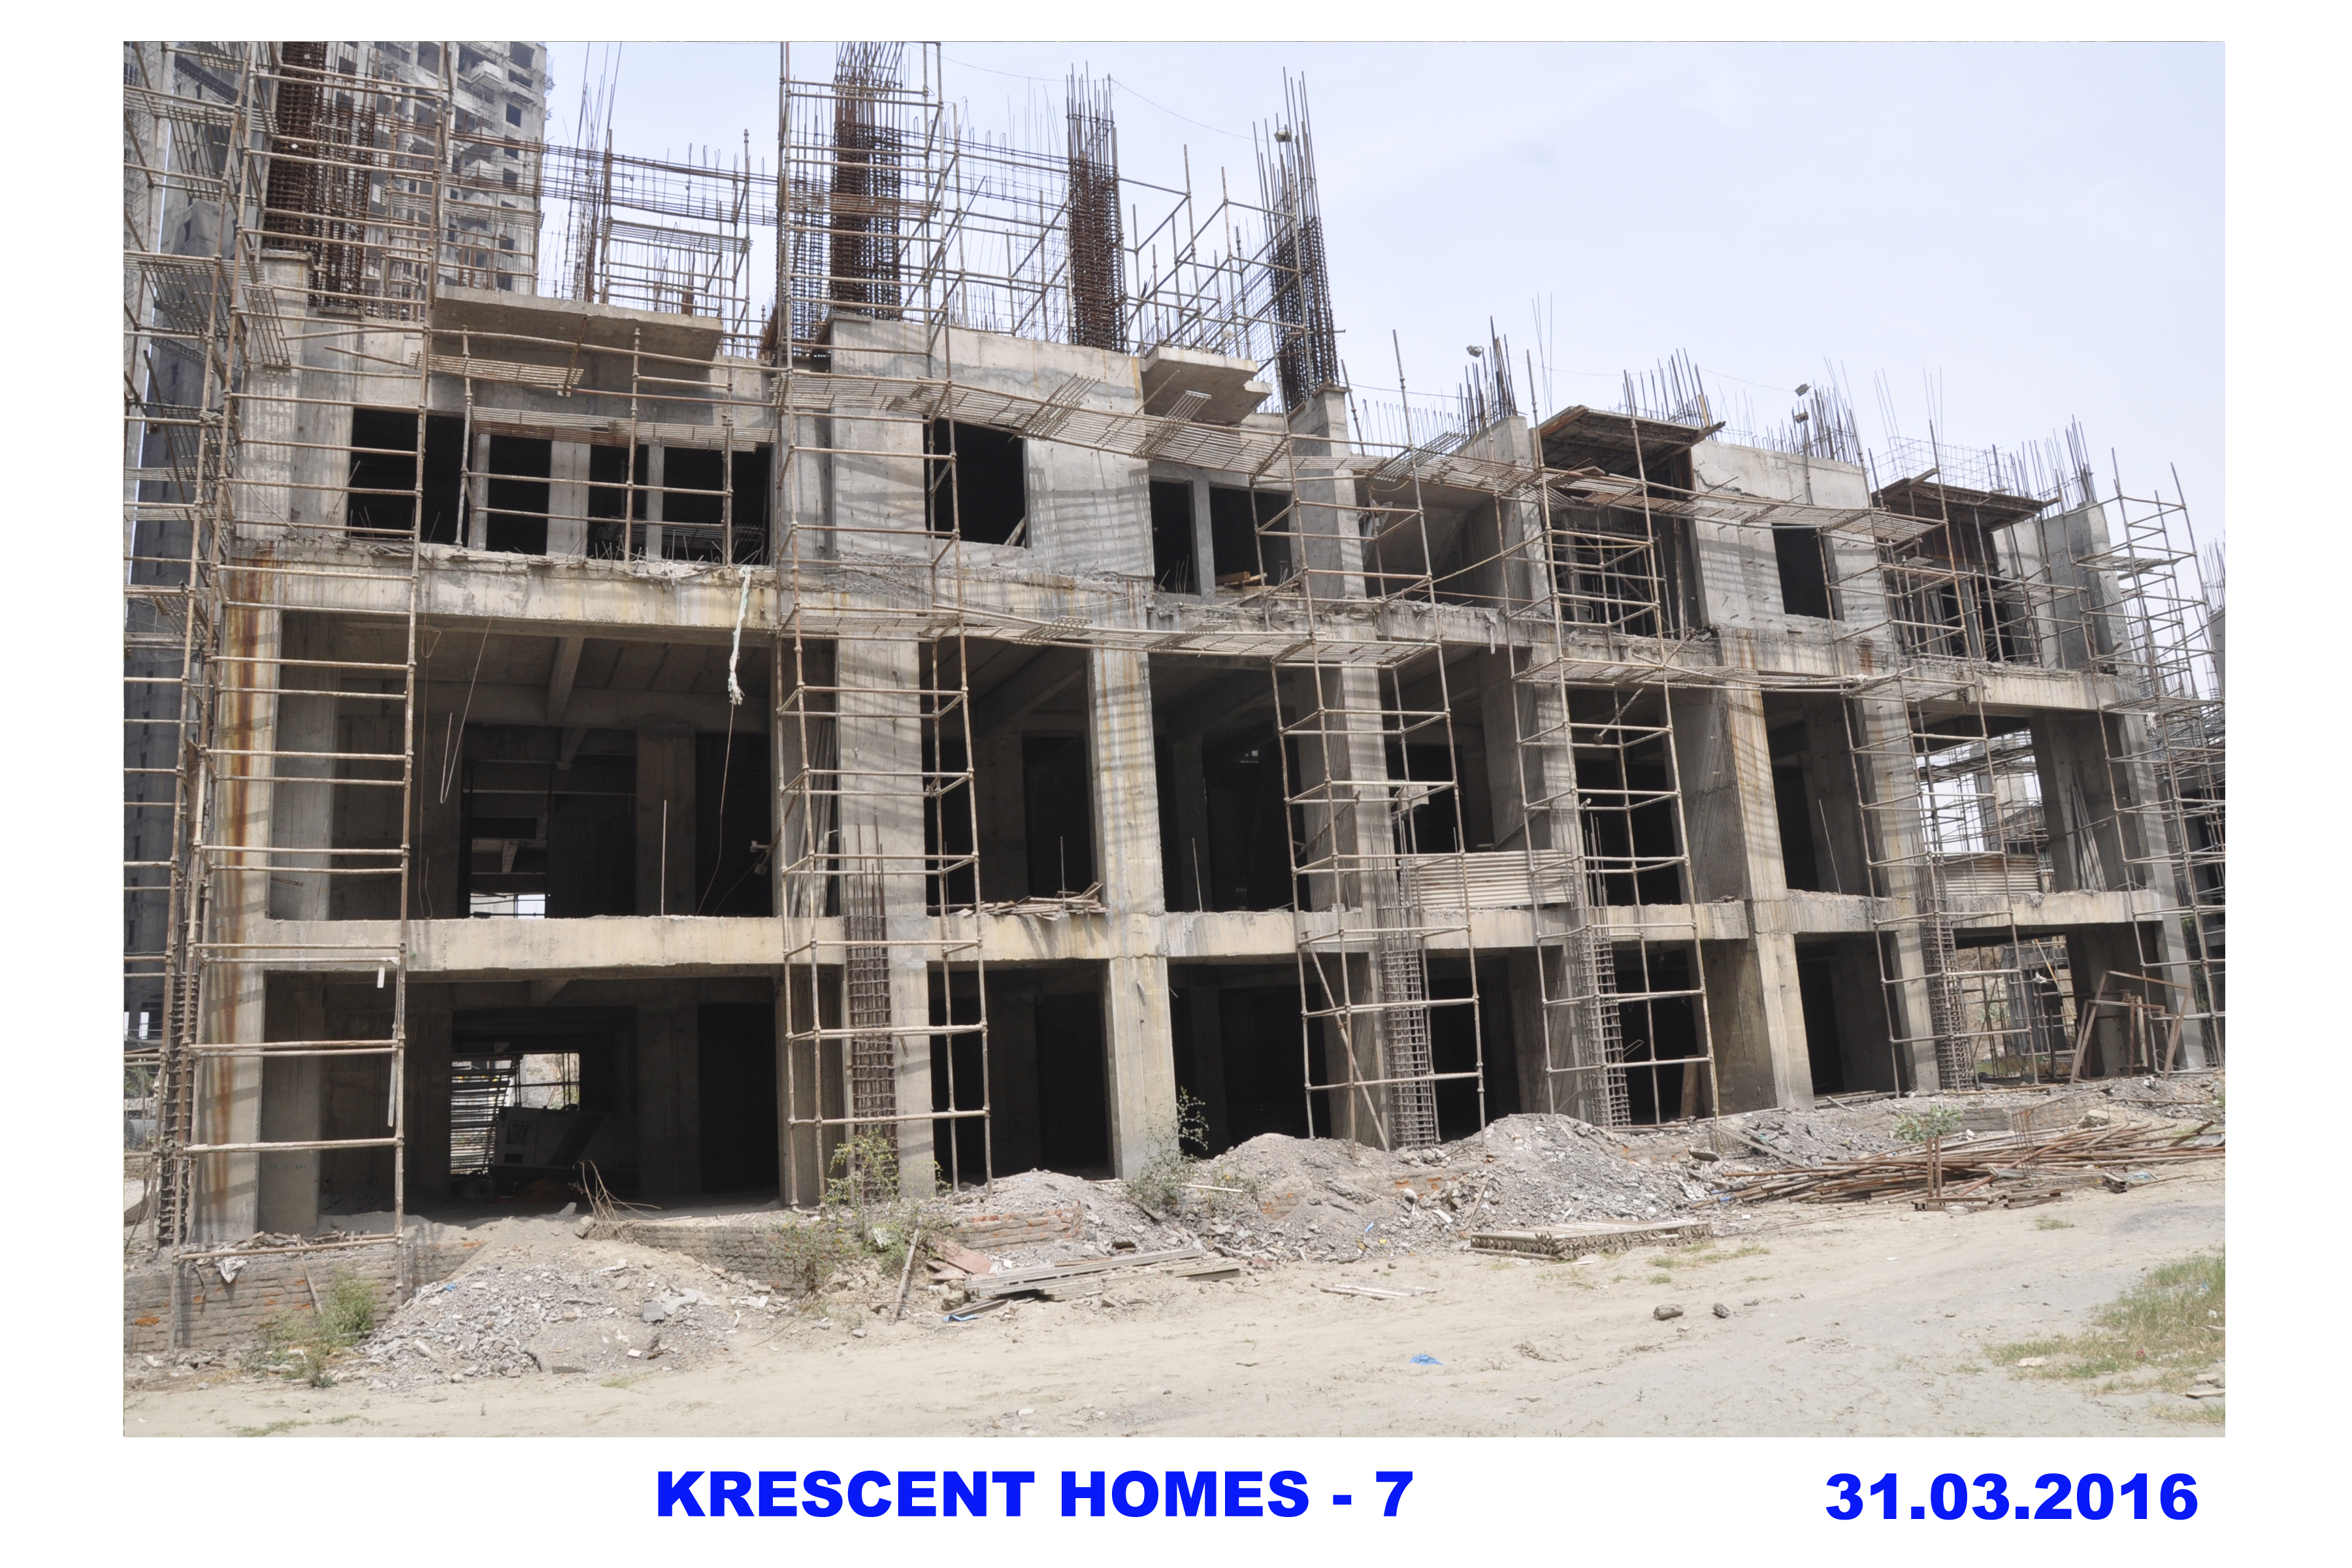 Krescent Homes Tower - 7